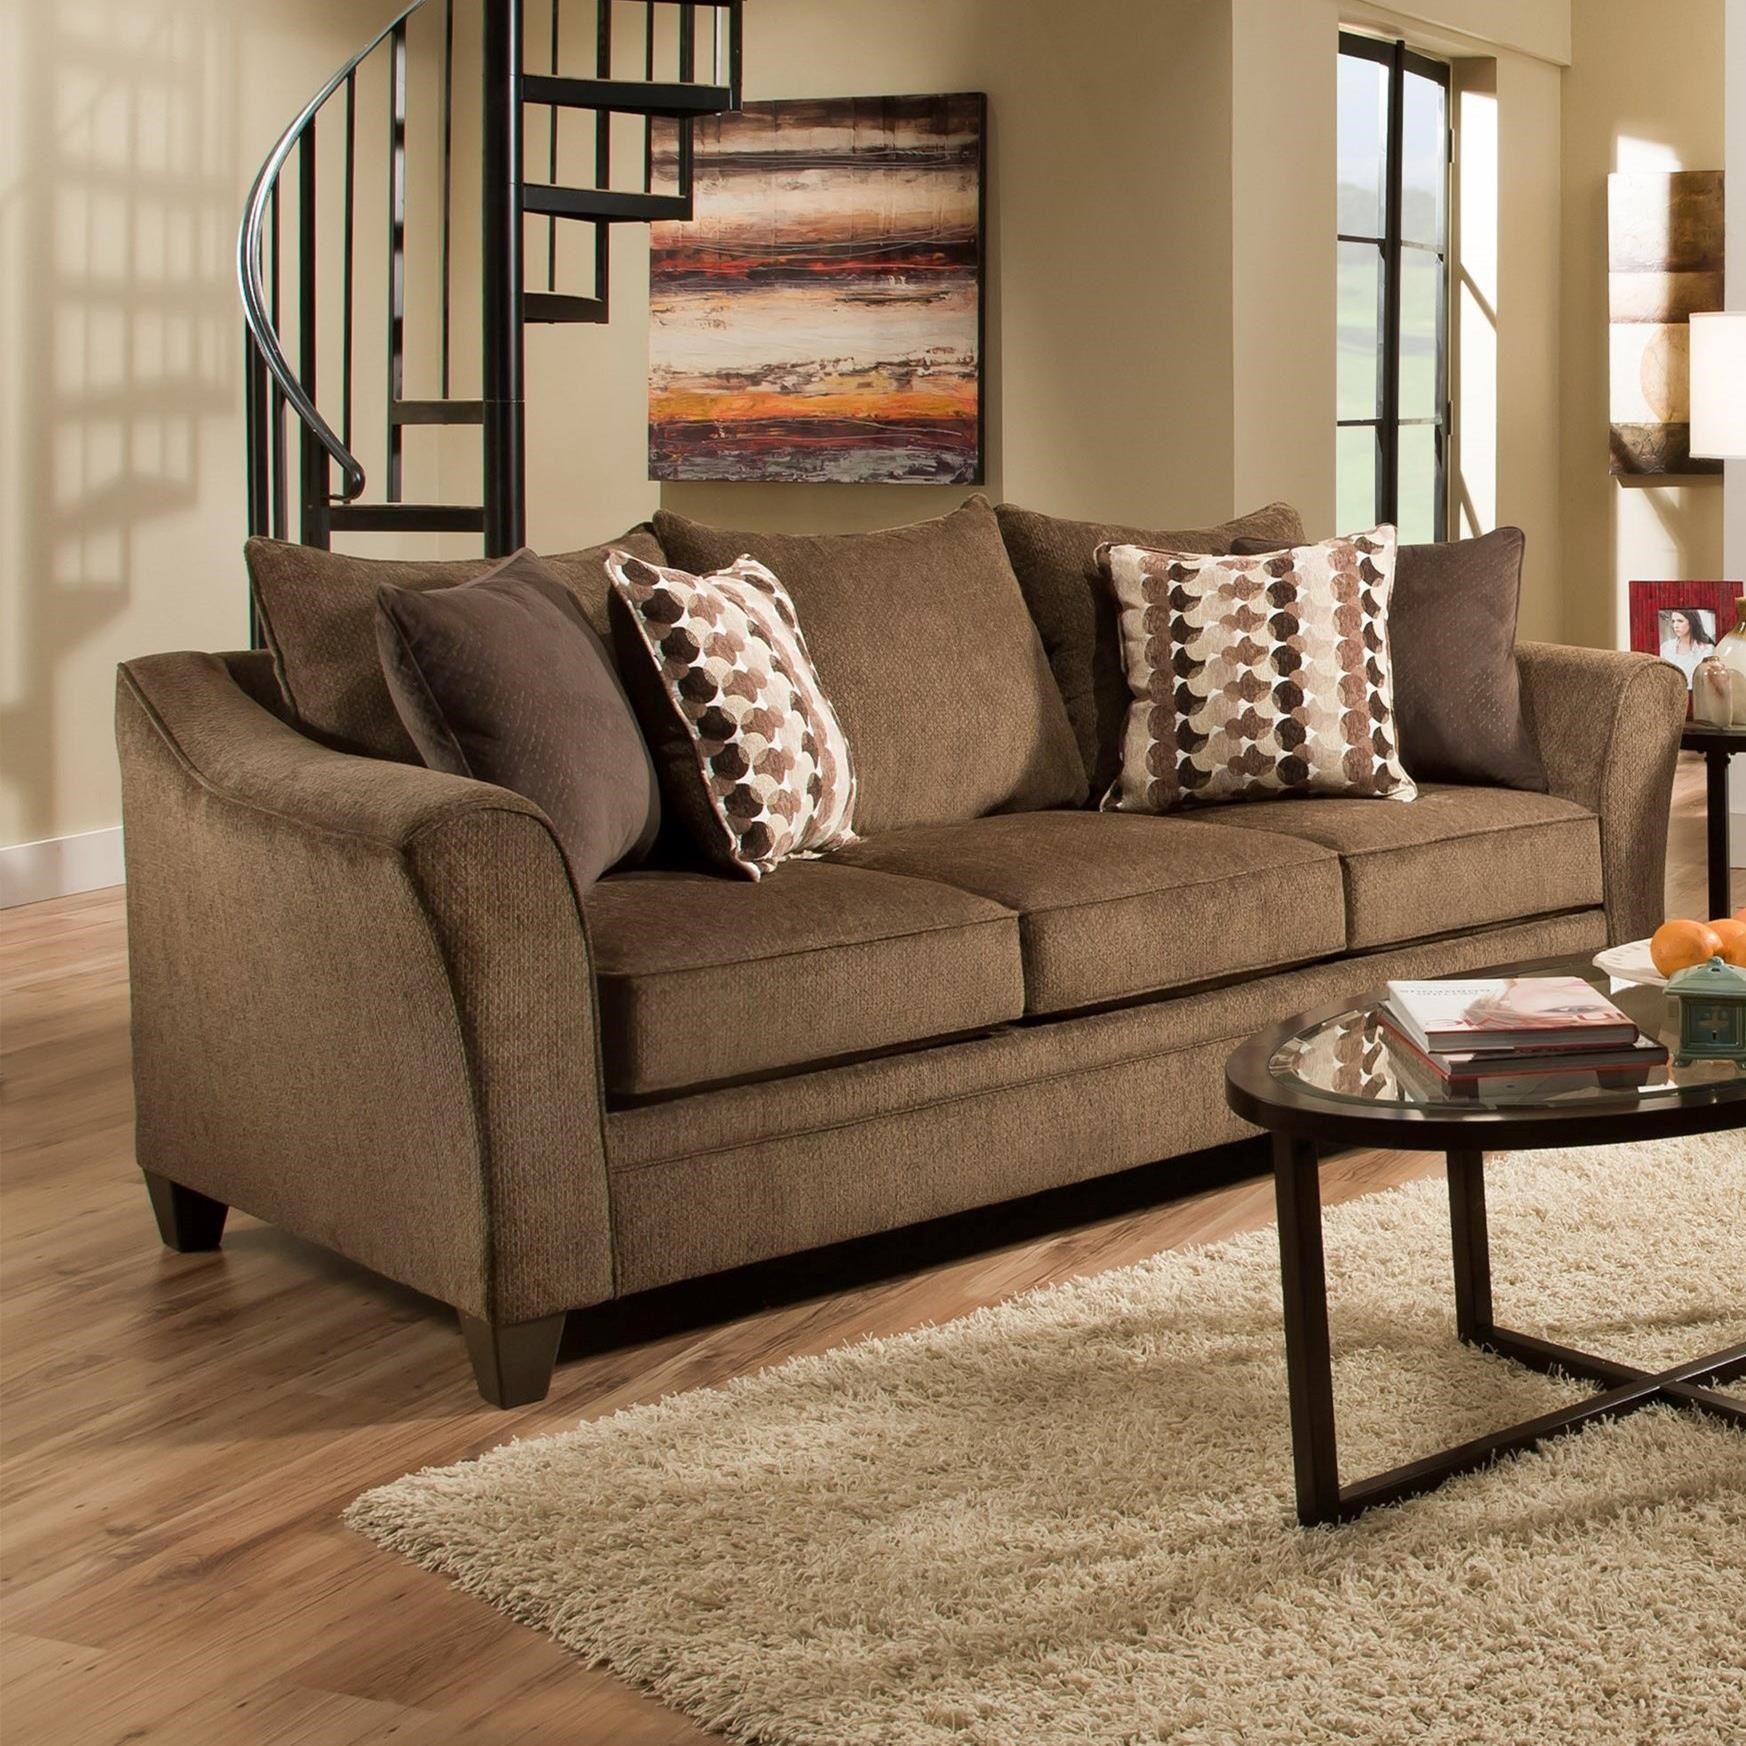 6485 Transitional Queen Slepper Sofa by United Furniture Industries at Dream Home Interiors